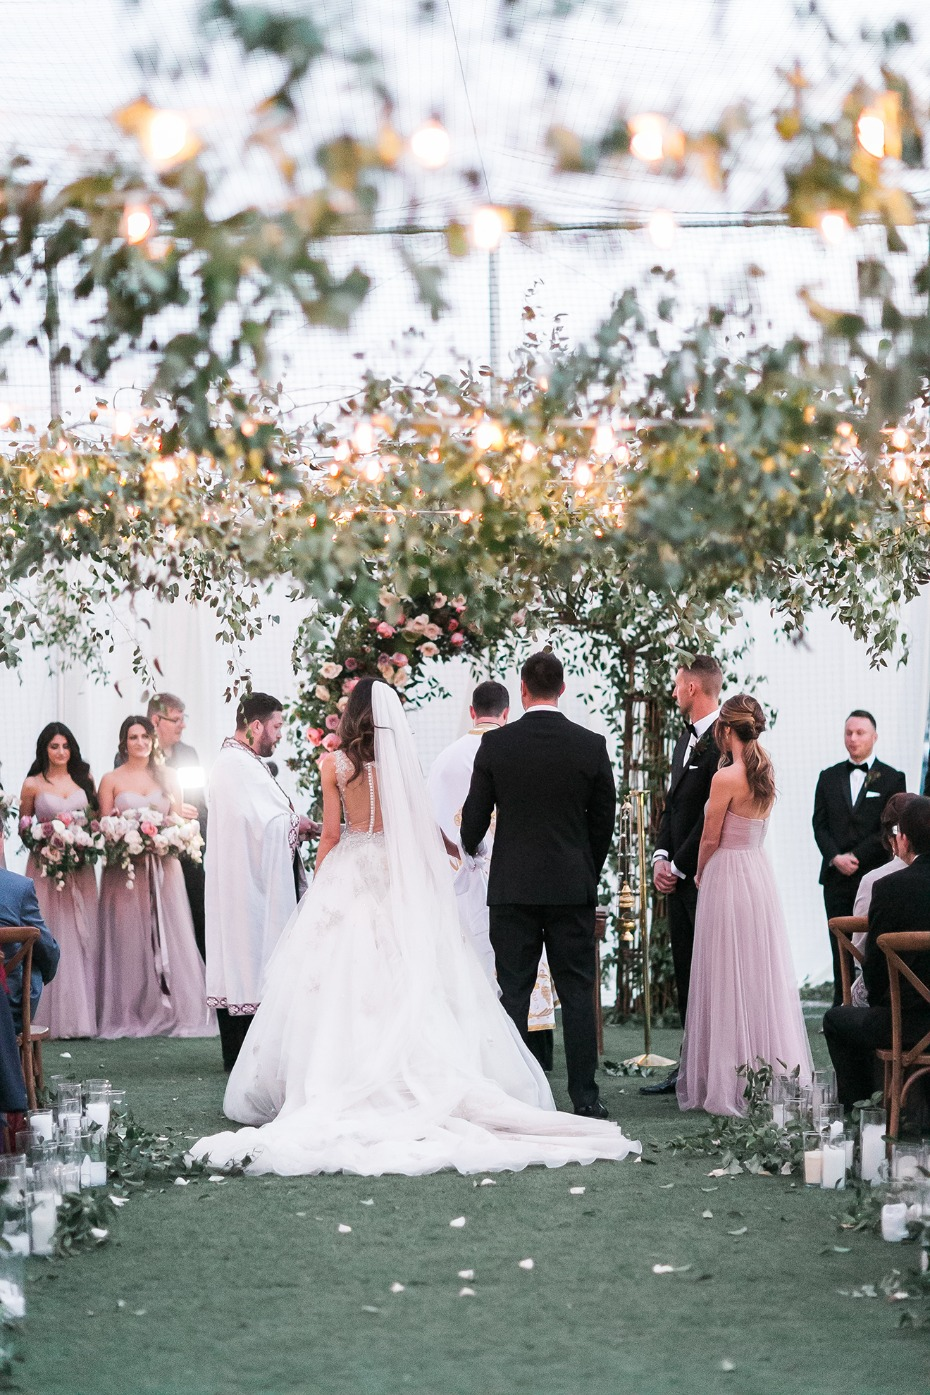 Romantic ceremony under a canopy of greenery